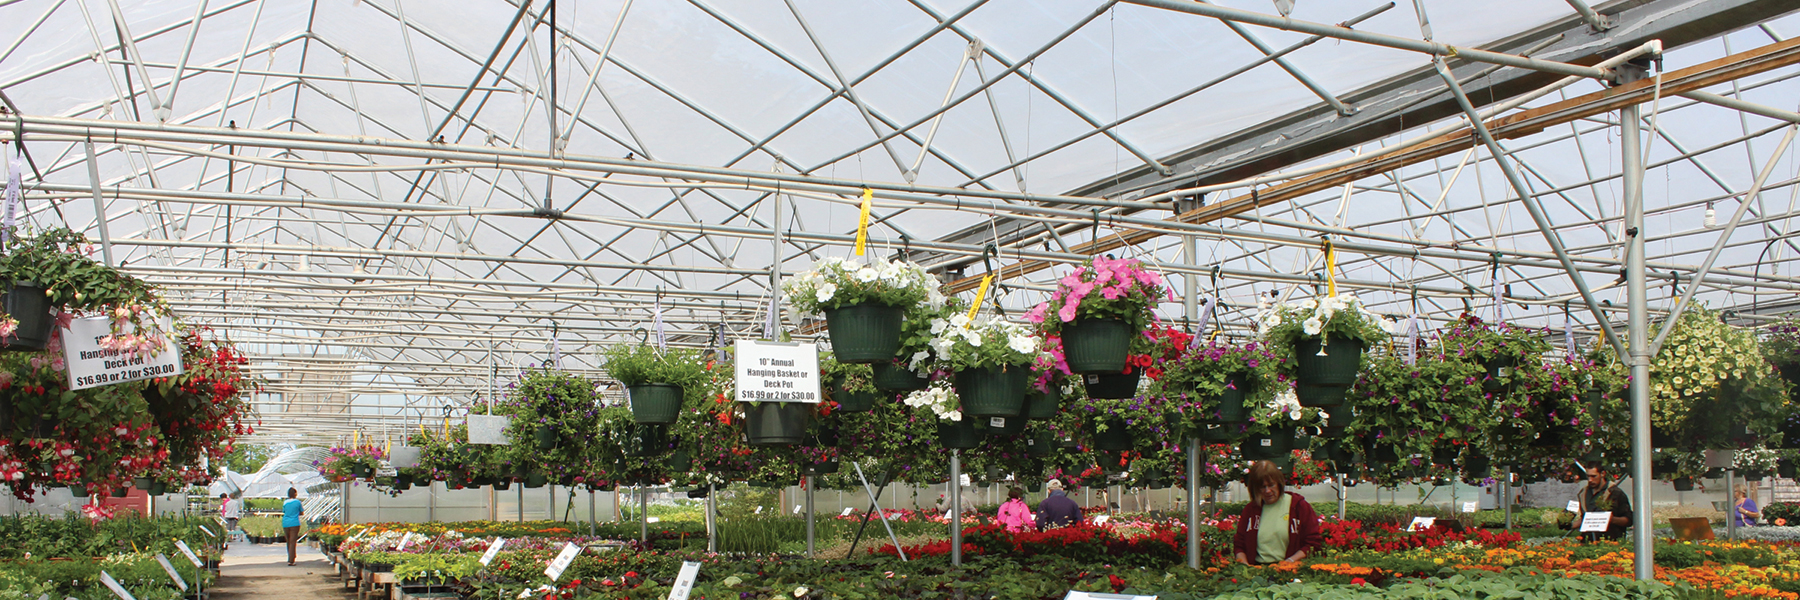 Flower Power Greenhouse